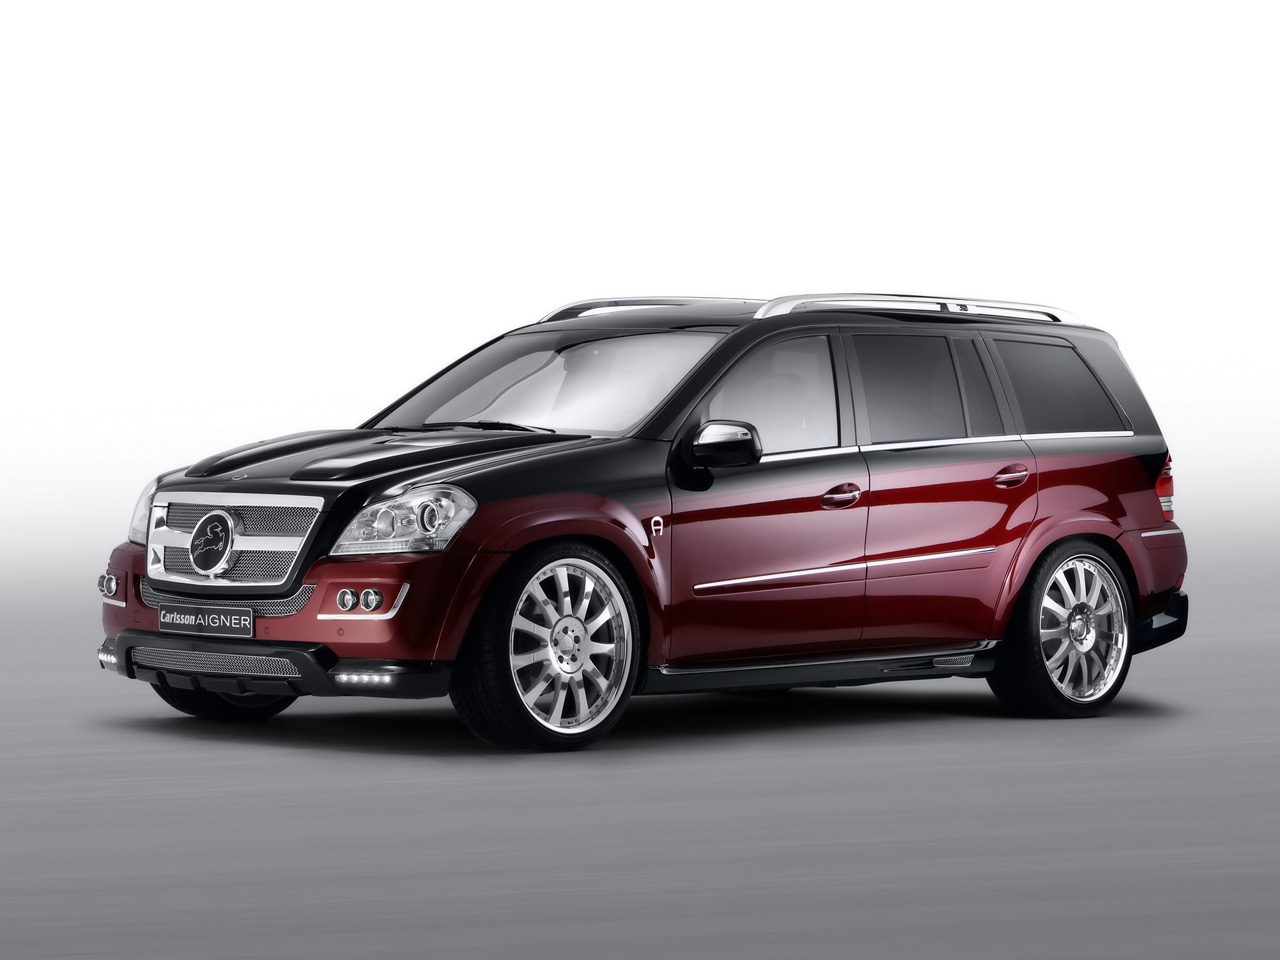 Mercedes benz gl 500 technical details history photos on for Mercedes benz gl series